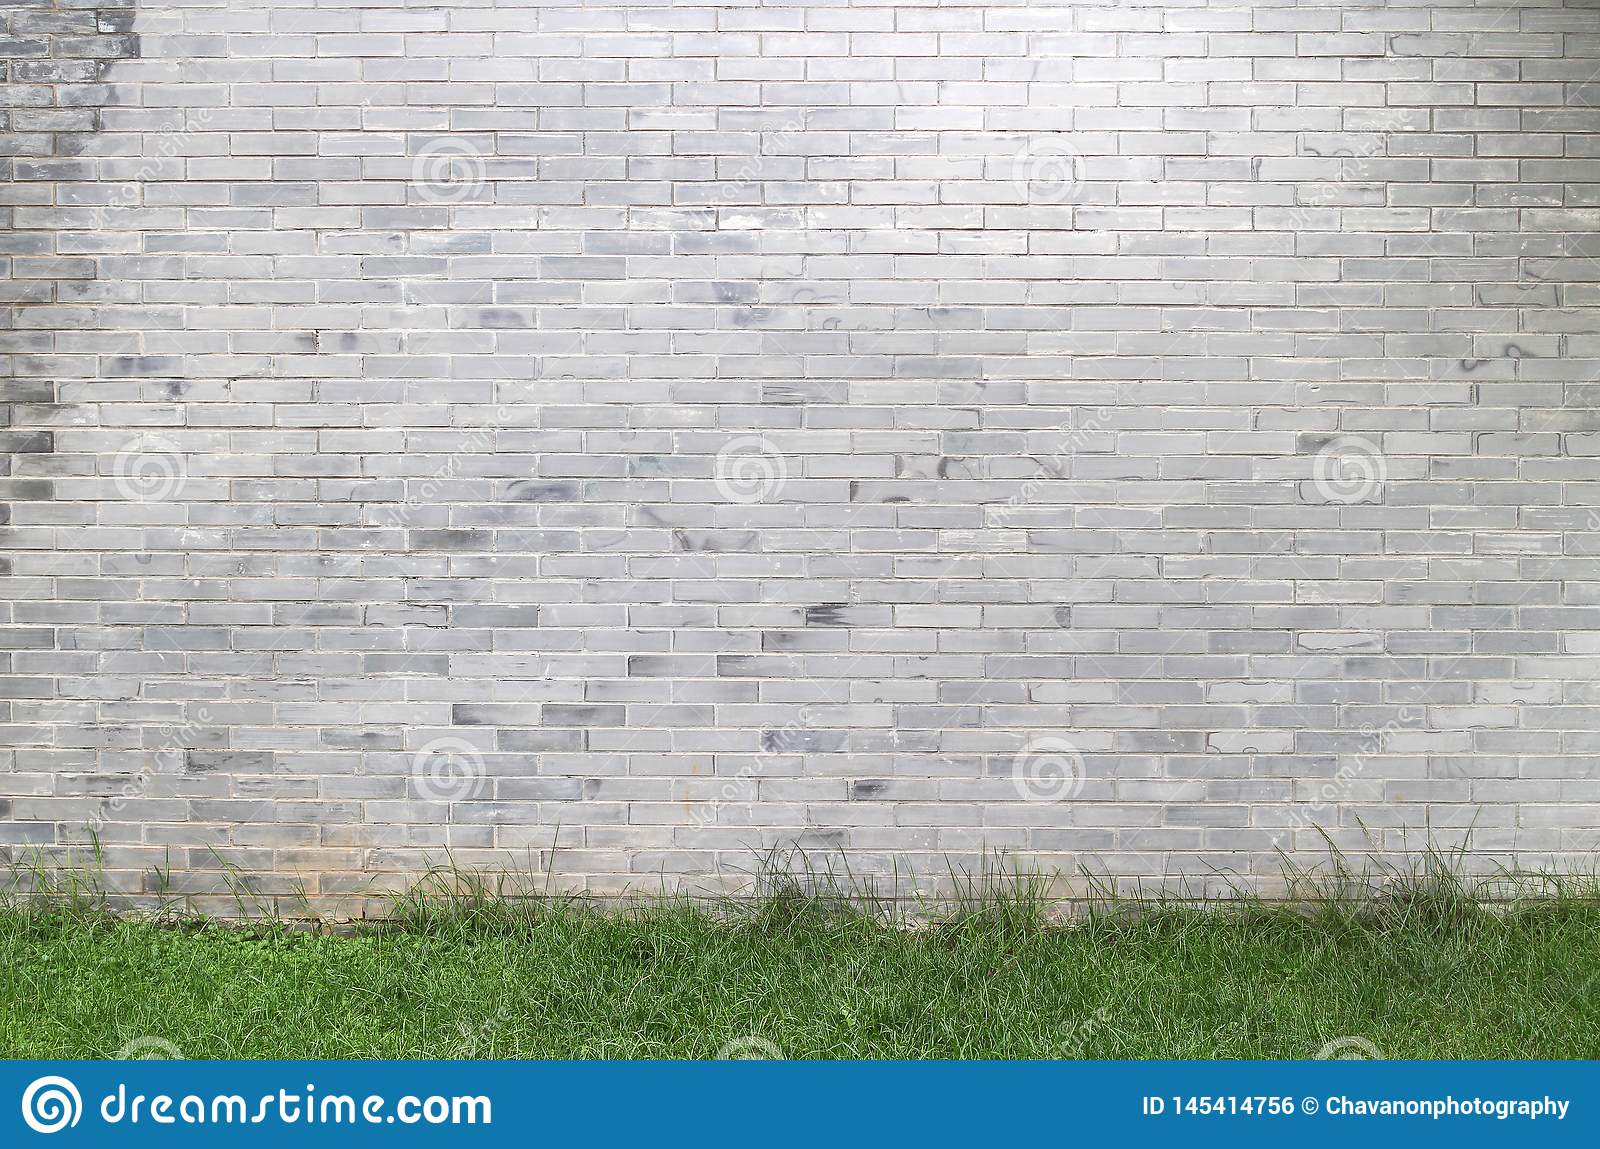 Stone tile wall texture, copy space